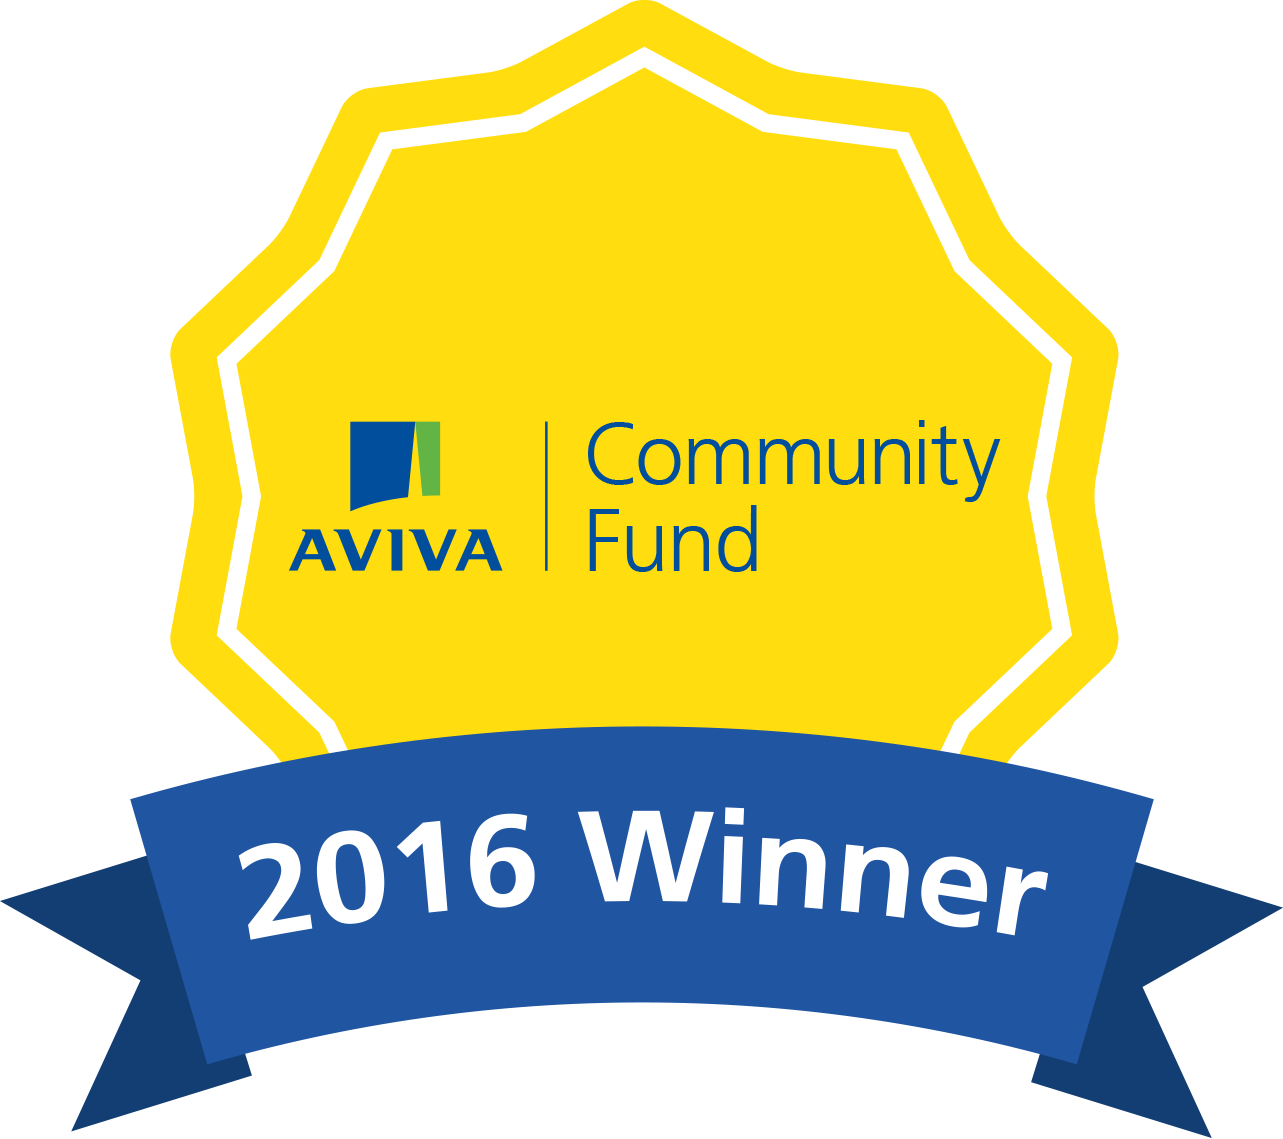 Aviva award winner 2016.png